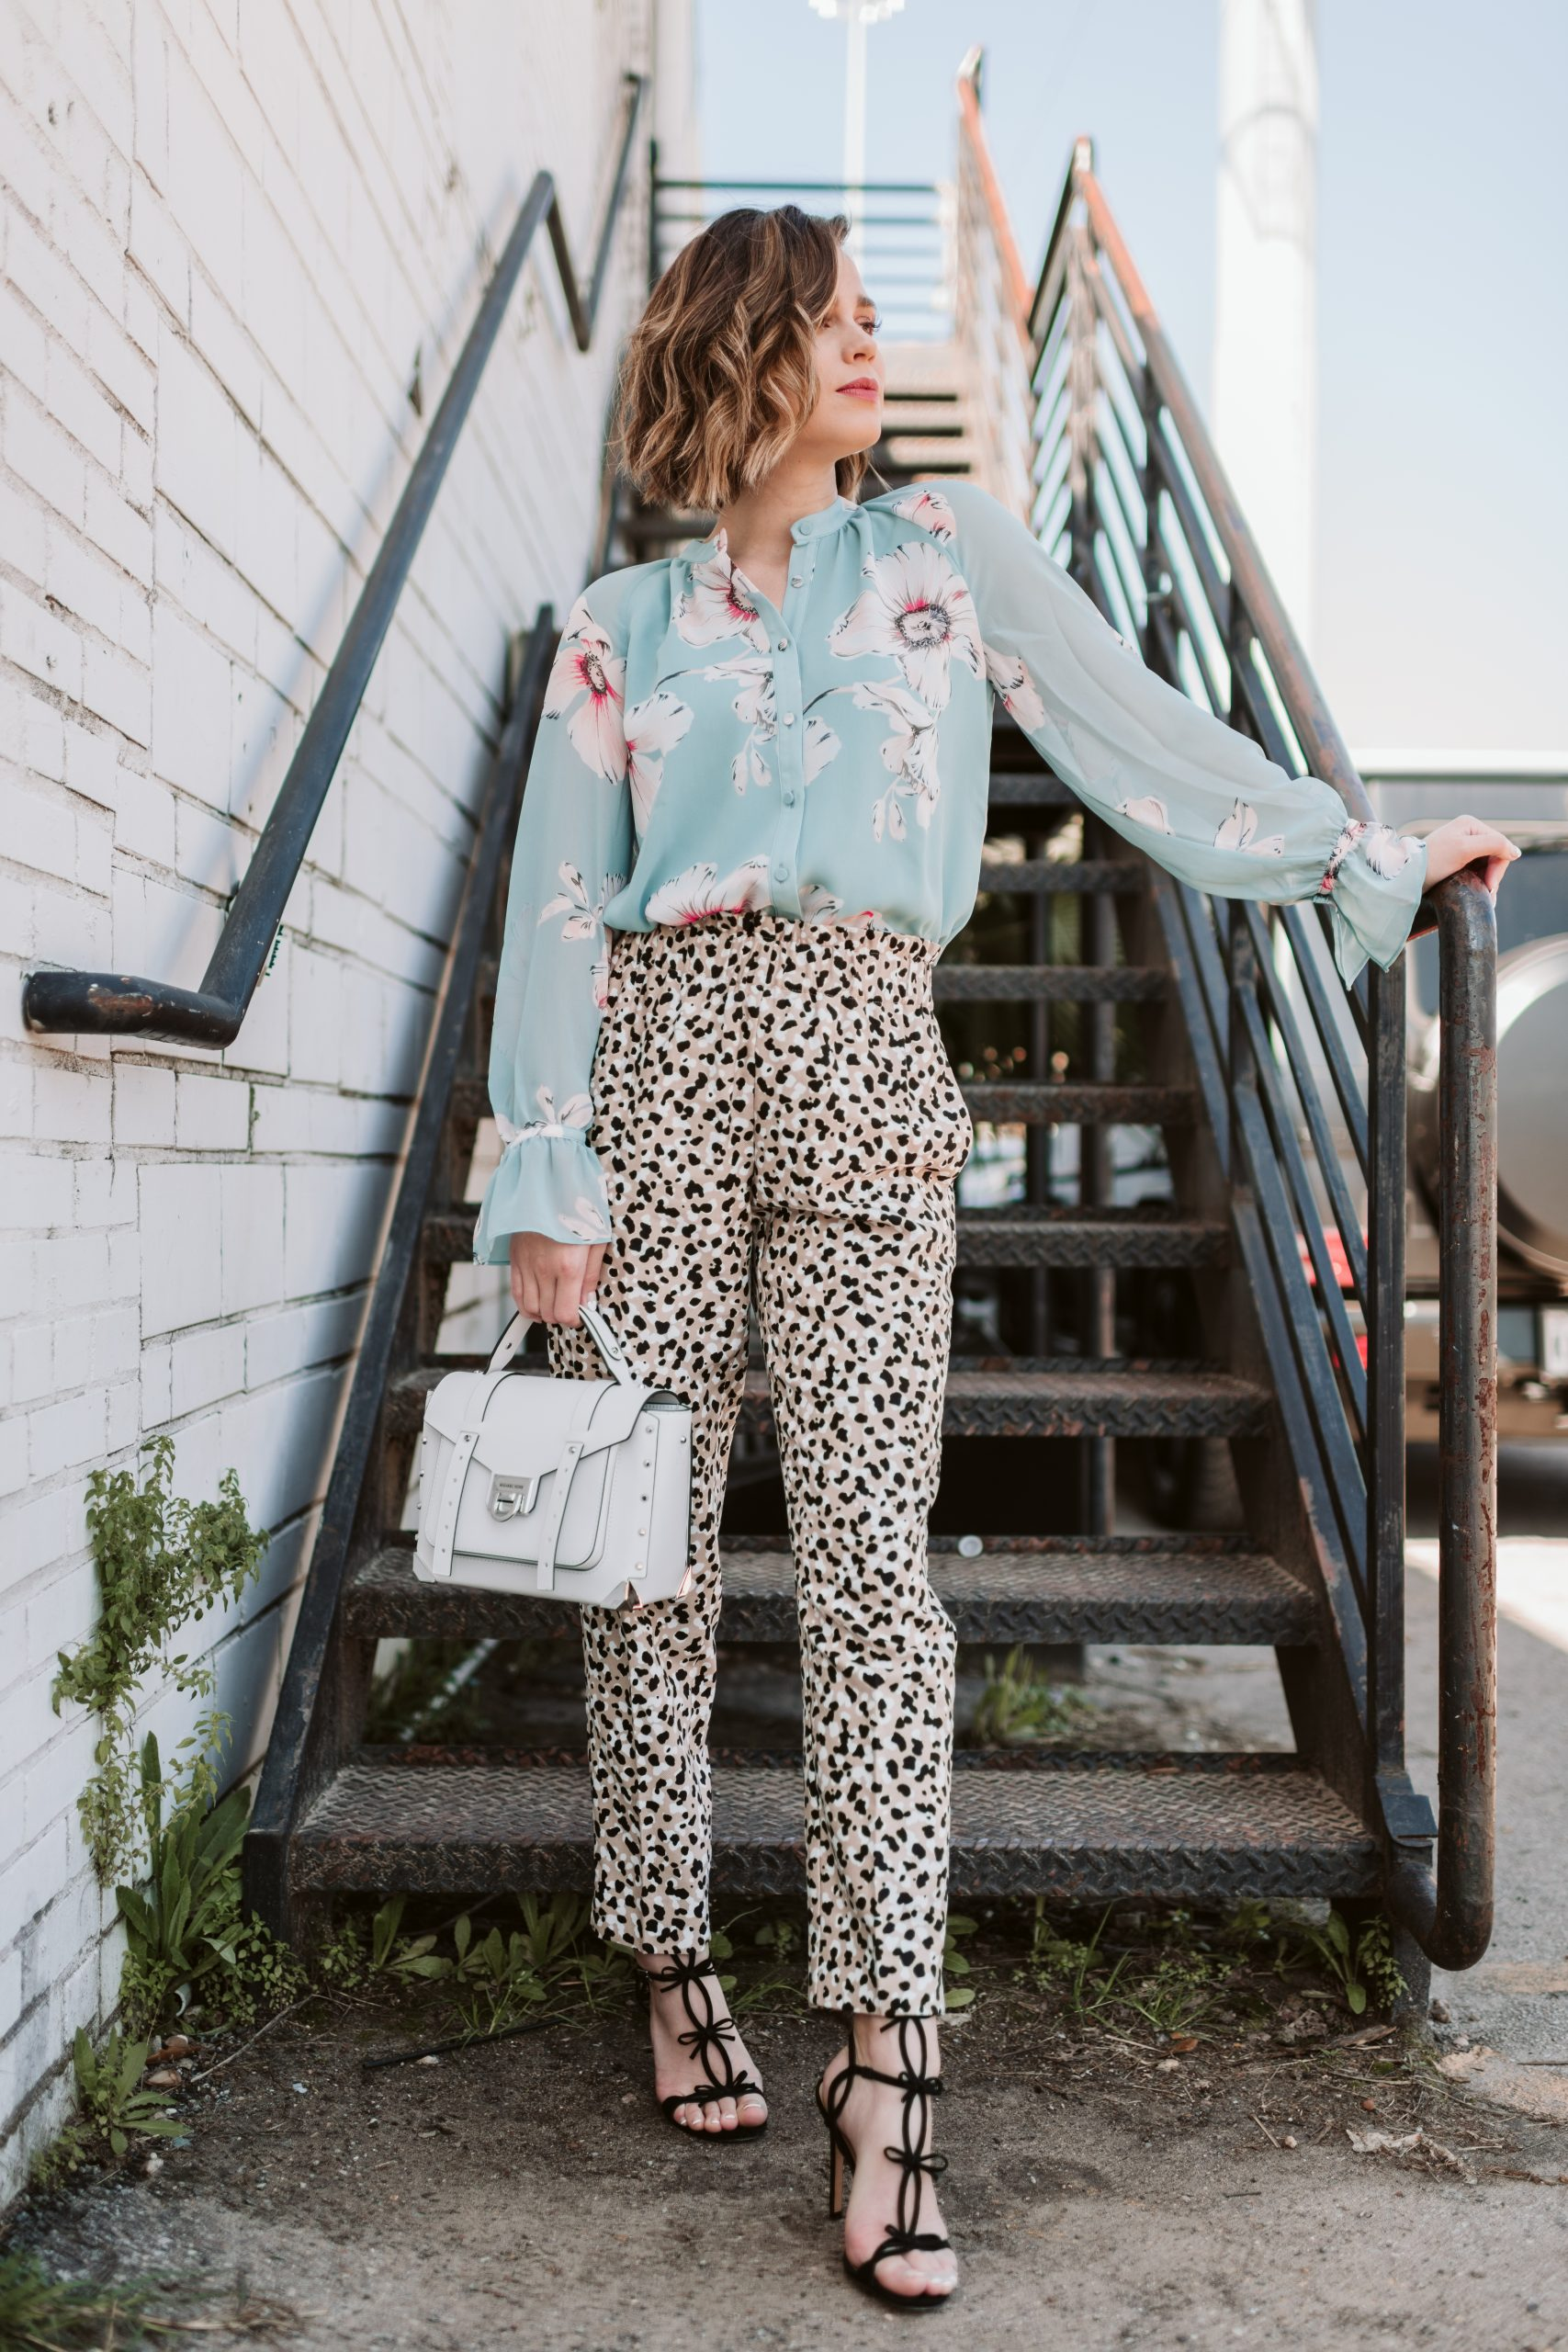 Houston fashion blogger Elly Brown wears a floral top with leopard pants from Ann Taylor